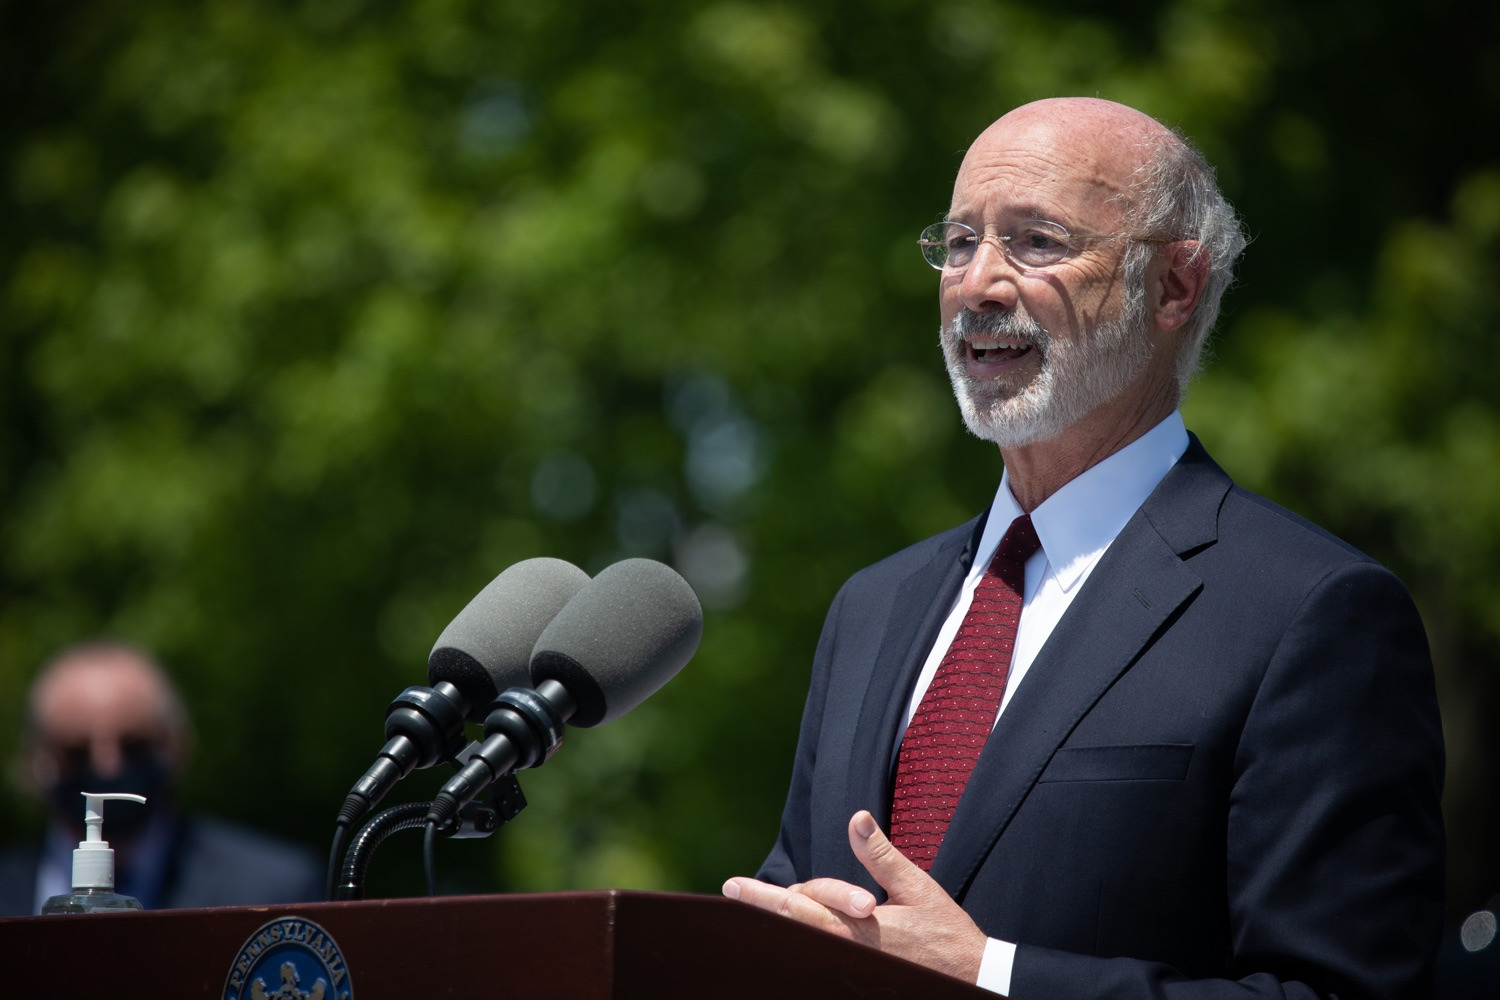 "<a href=""https://filesource.wostreaming.net/commonwealthofpa/photo/18101_gov_healthcare_dz_18.jpg"" target=""_blank"">⇣ Download Photo<br></a>Pennsylvania Governor Tom Wolf answering questions from the press at UPMC Pinnacle Community Osteopathic.As health care professionals work the front lines of the COVID-19 pandemic and the commonwealth continues to emphasize the importance of mask-wearing and social distancing to protect all, Governor Tom Wolf today visited UPMC Pinnacle Community Osteopathic Hospital in Harrisburg to thank staff and stress why mask-wearing is a necessary requirement to fight the spread of COVID-19.    Harrisburg, PA  June 29, 2020"